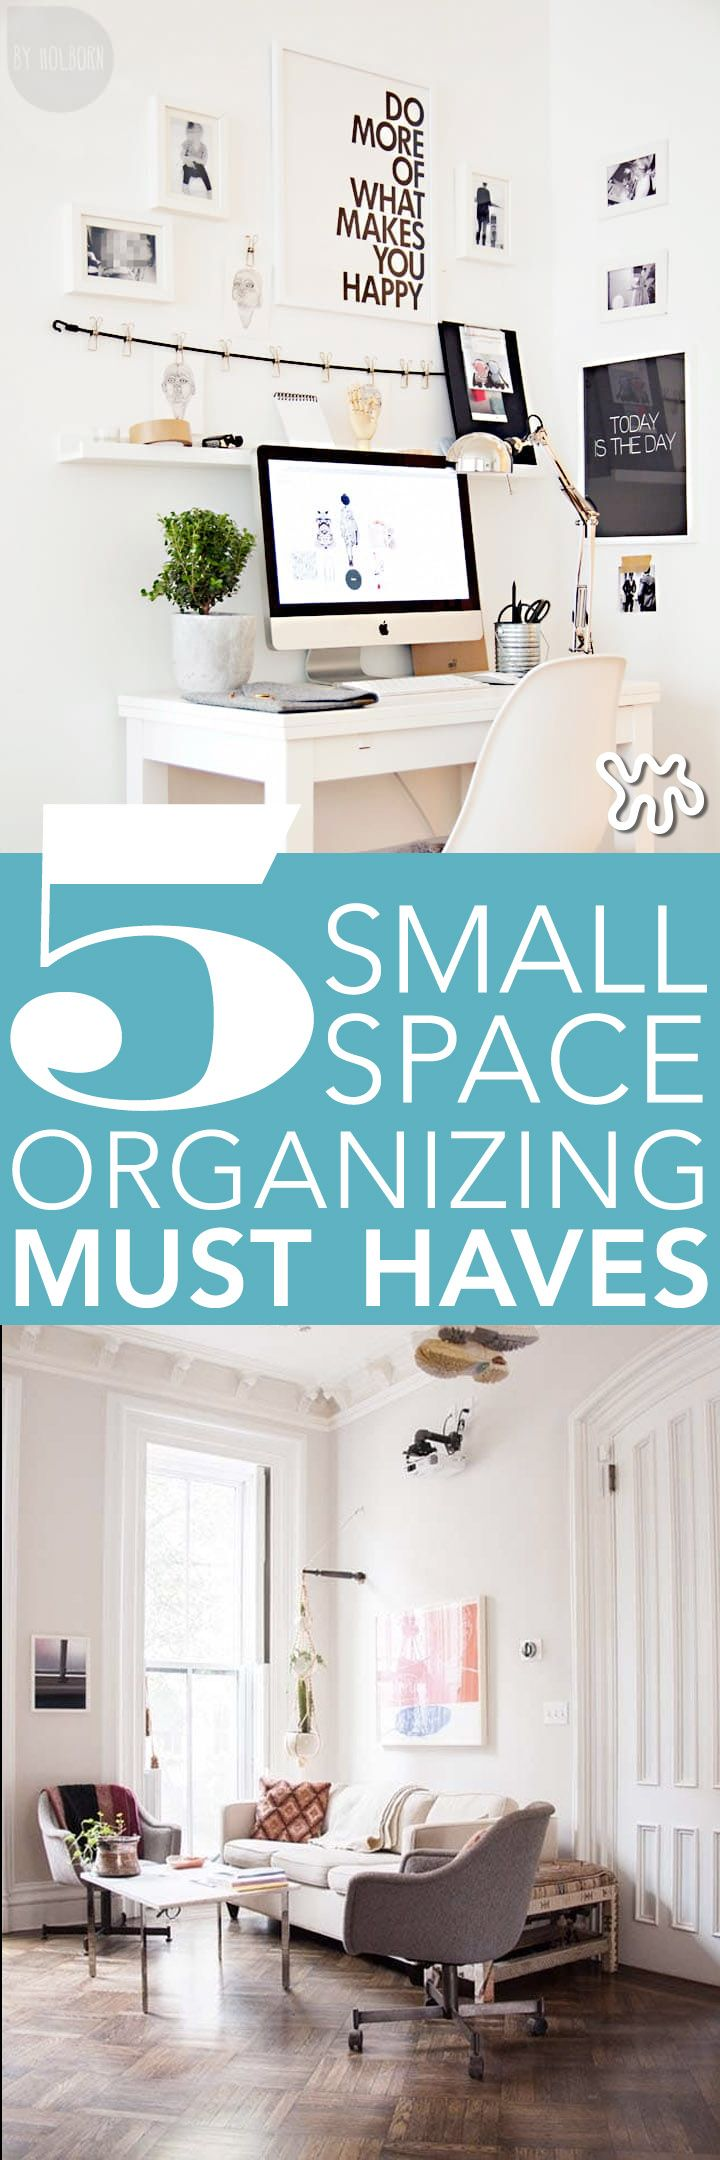 Living in a small space can be fun and rewarding. When you have fewer things to weigh you down, carefully-chosen items that you love by necessity, and you also learn to live within your means. It can also be a pain in the backside, to be perfectly honest. Keeping a tiny home neat and organized takes effort, but it's doable. Here are 5 storage and organizing tips and tricks for small spaces.